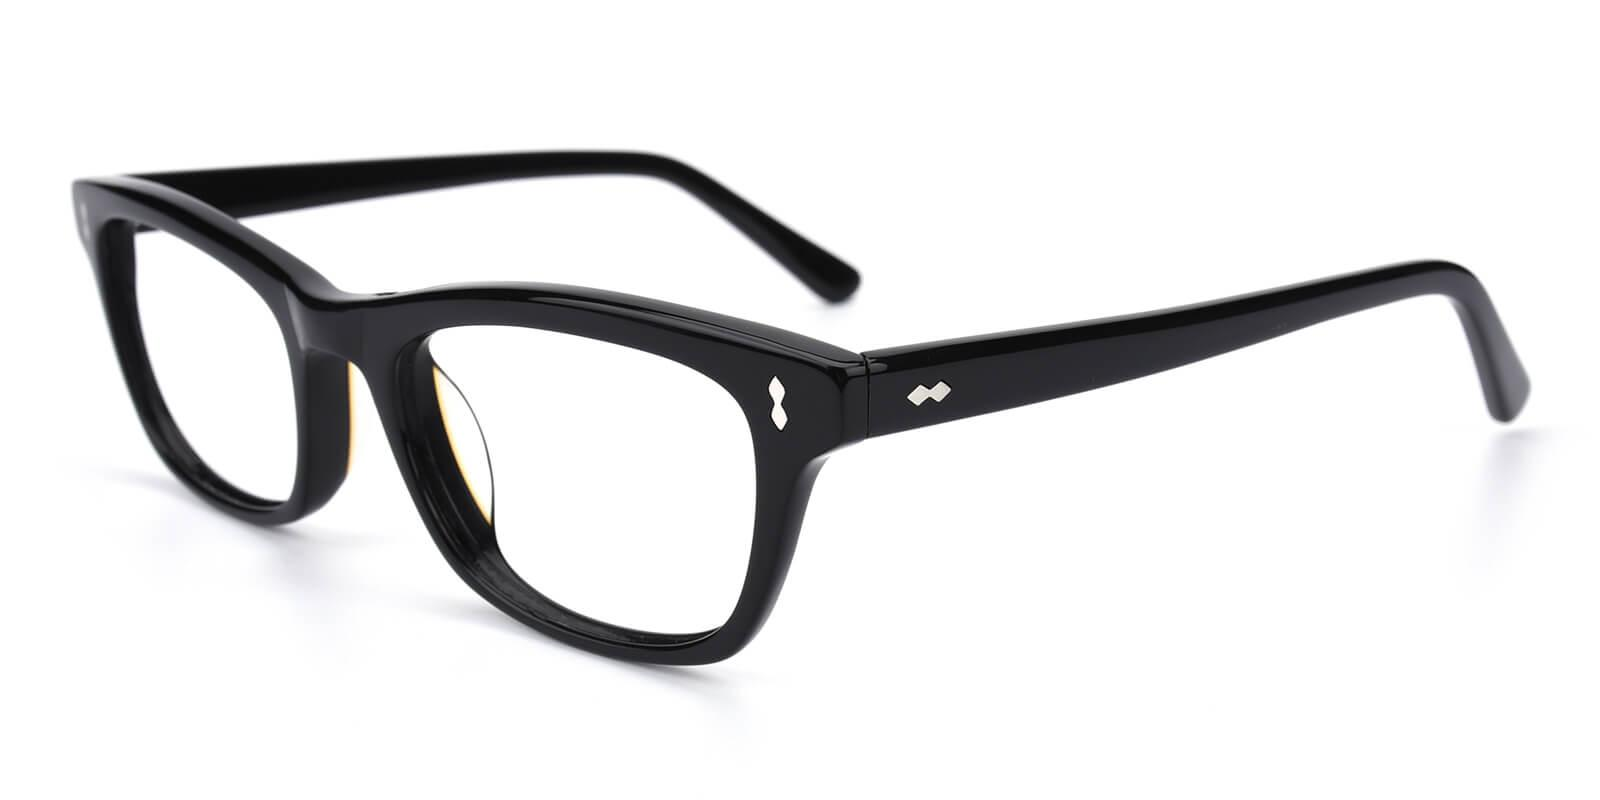 Leavary-Black-Rectangle-Acetate-Eyeglasses-detail